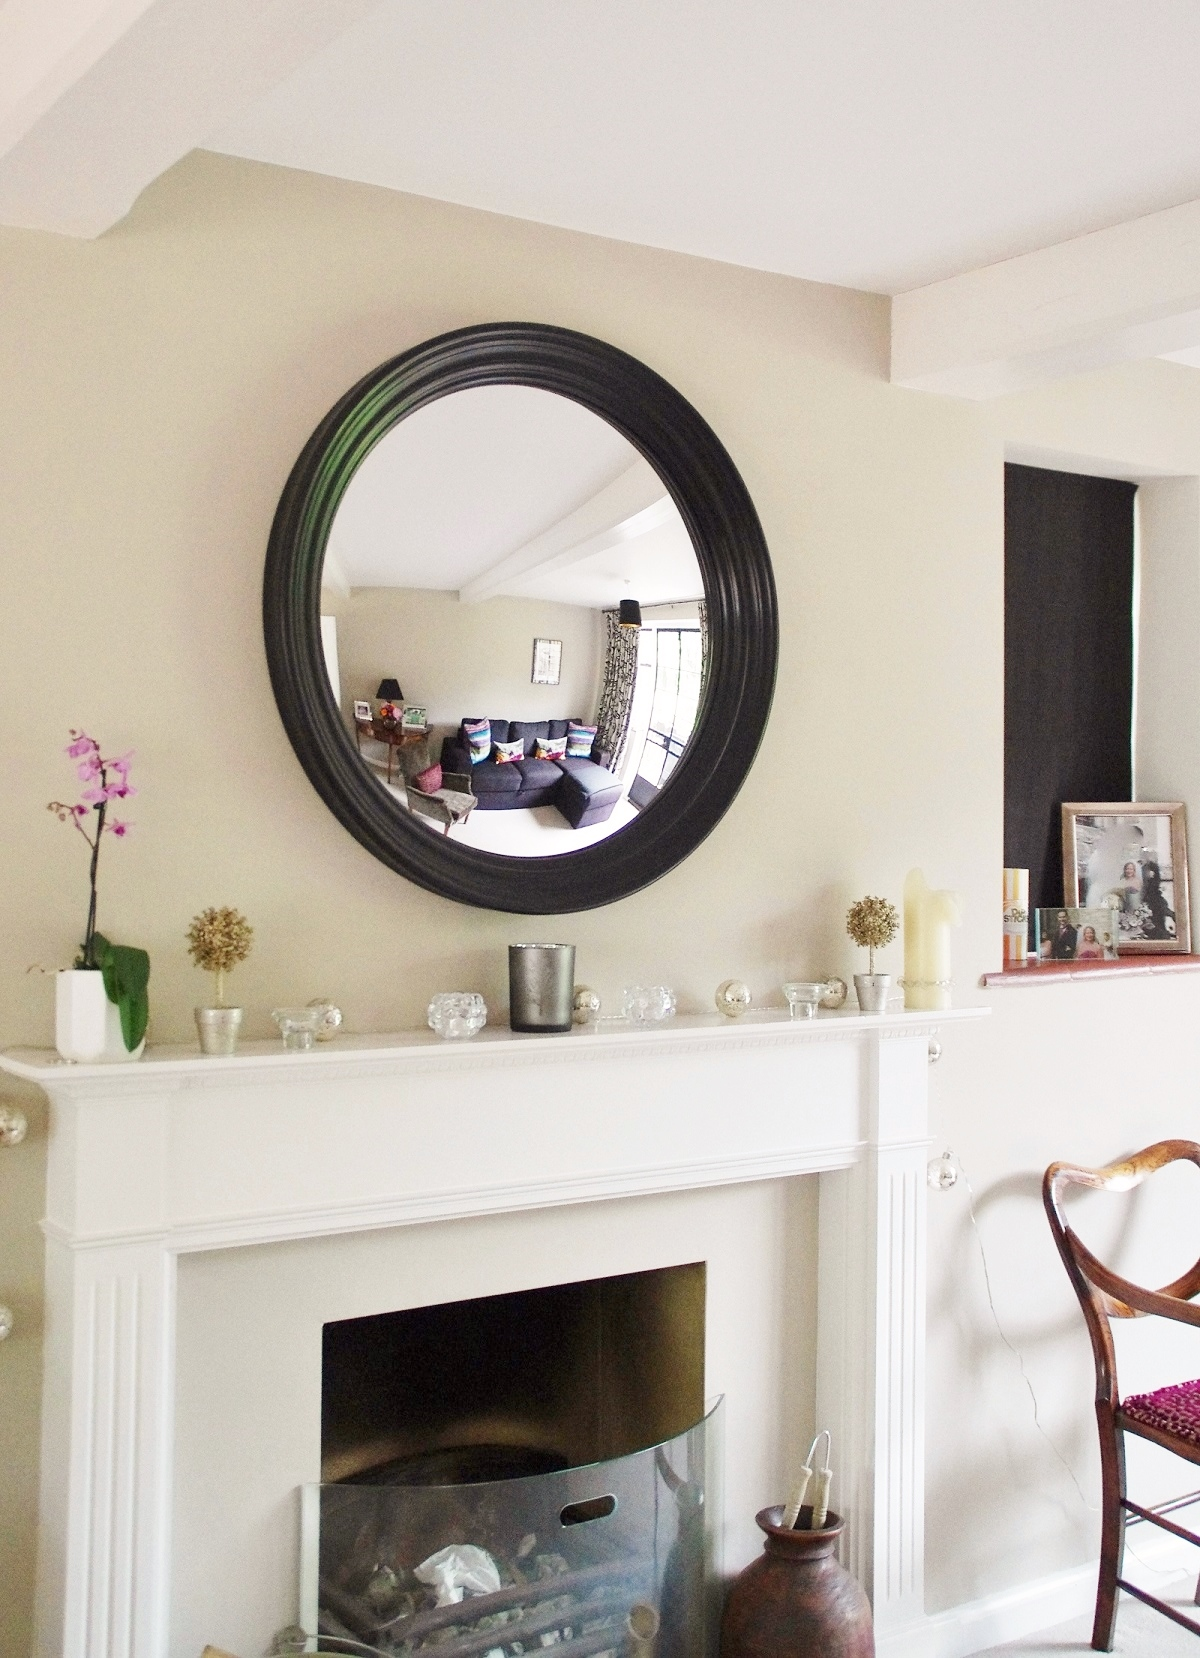 4 Essential Tips For Hanging A Round Mirror Above A Fireplace Omelo Mirrors Omelo Decorative Convex Mirrors